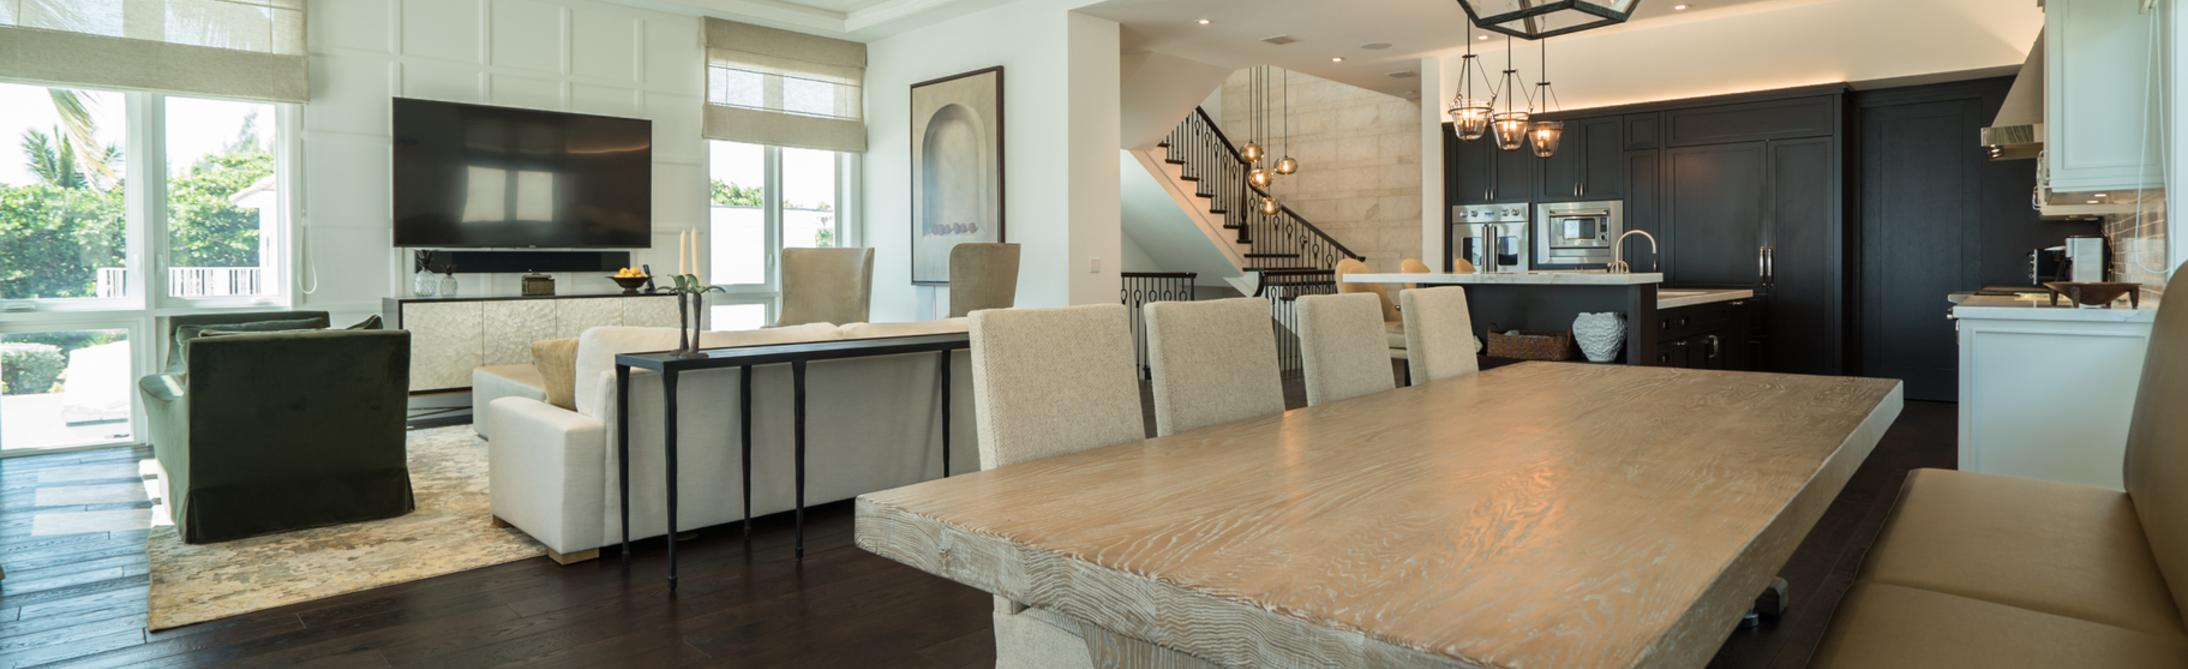 Kitchen and Dining Room by Custom Home Developers in South Florida